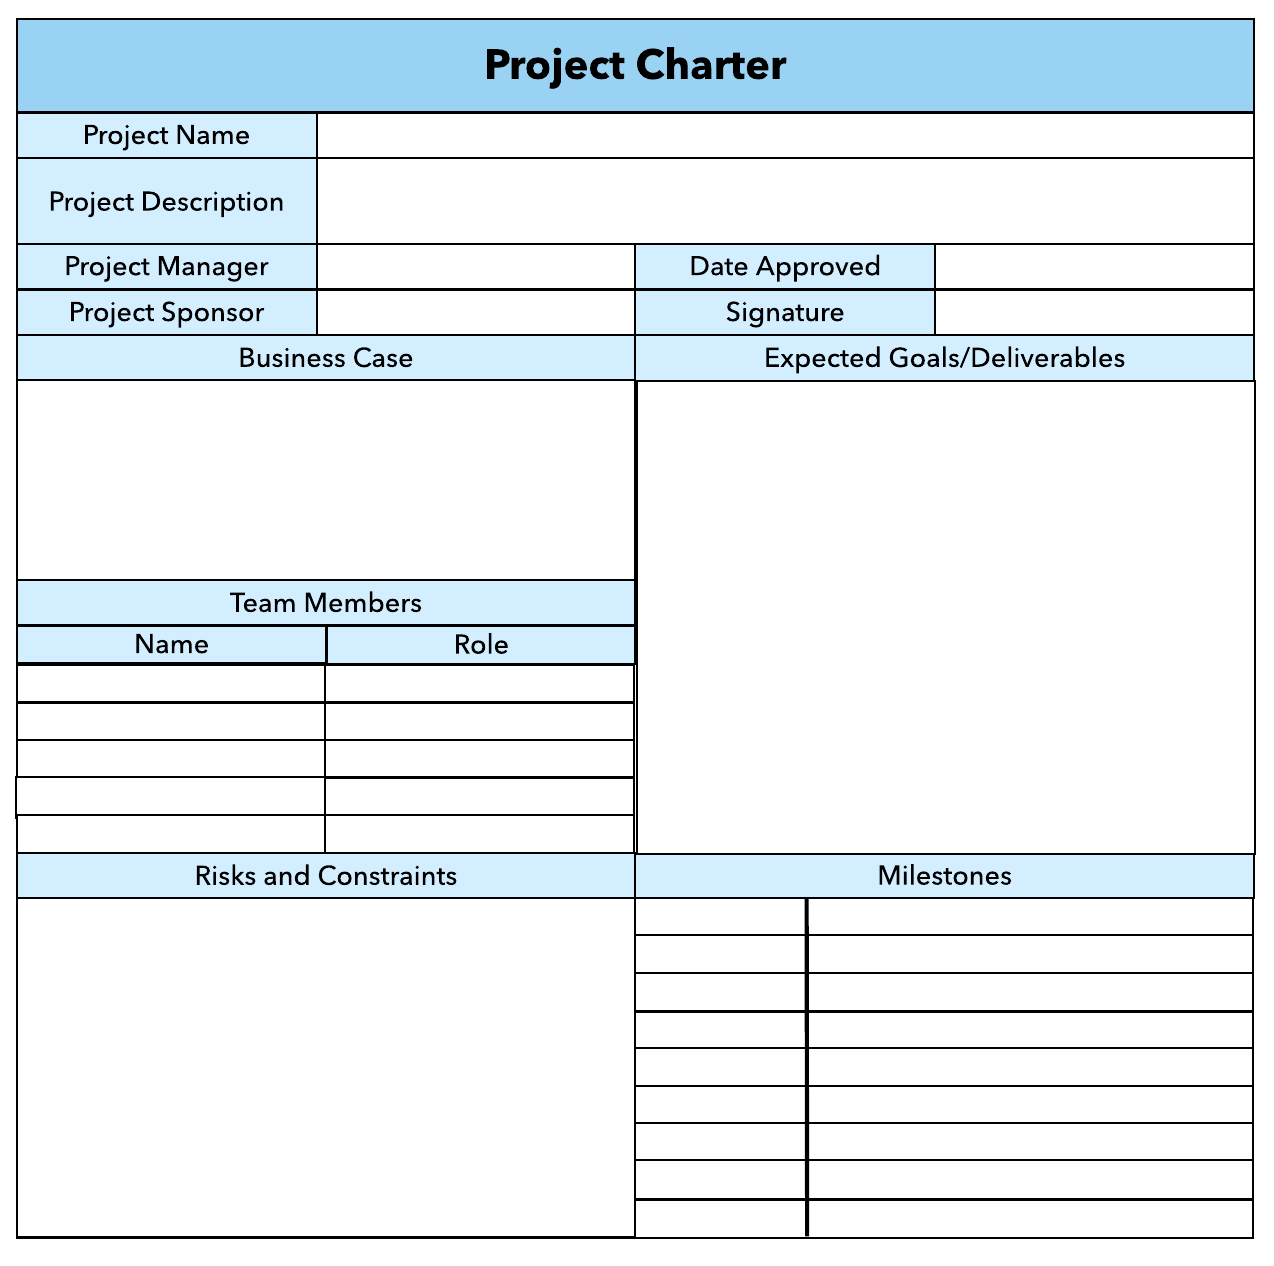 Writing your first Project Charter